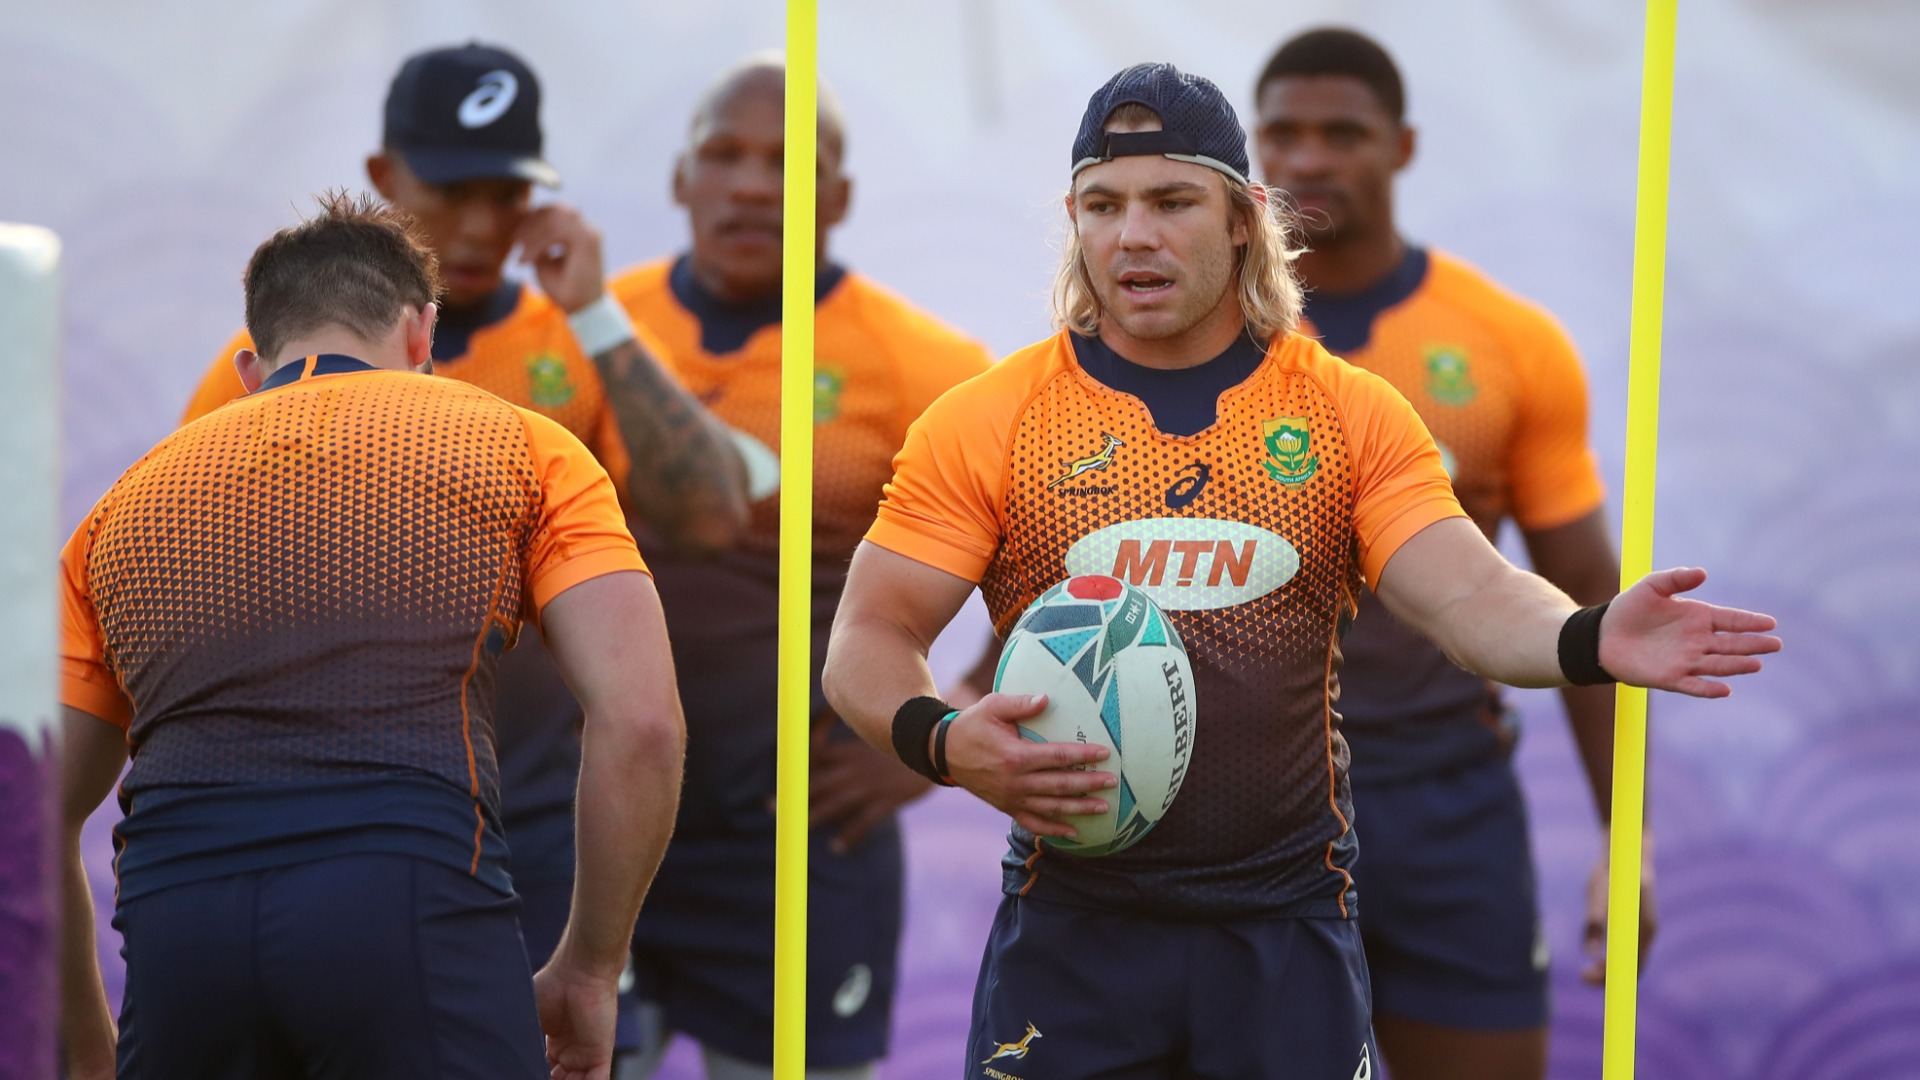 Rugby World Cup 2019: Springboks need 'game of their lives' to beat England - Fitzpatrick